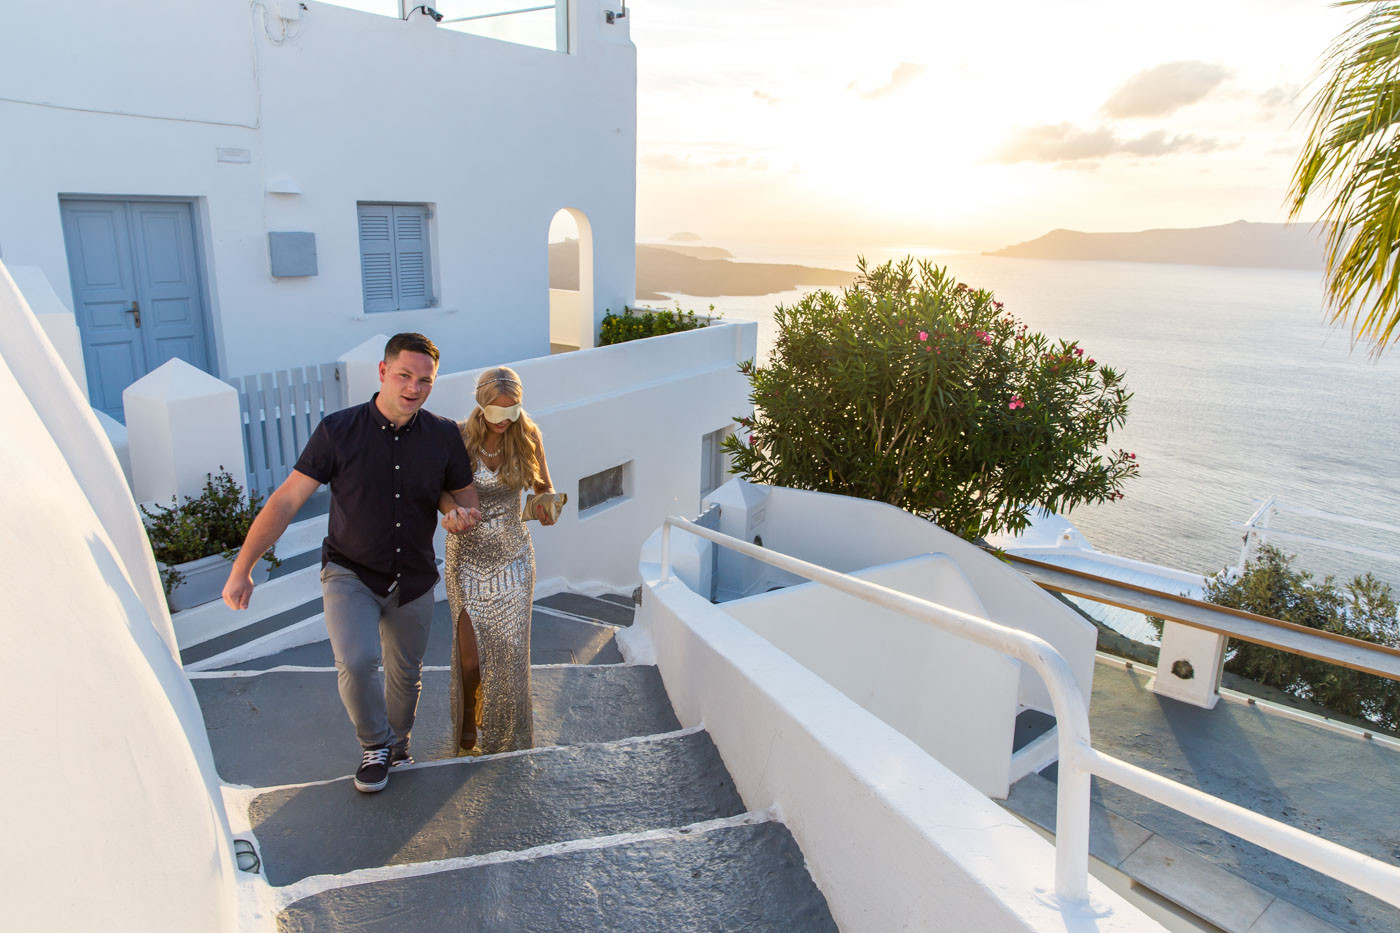 wedding proposal at dana villas santorini keith louisa